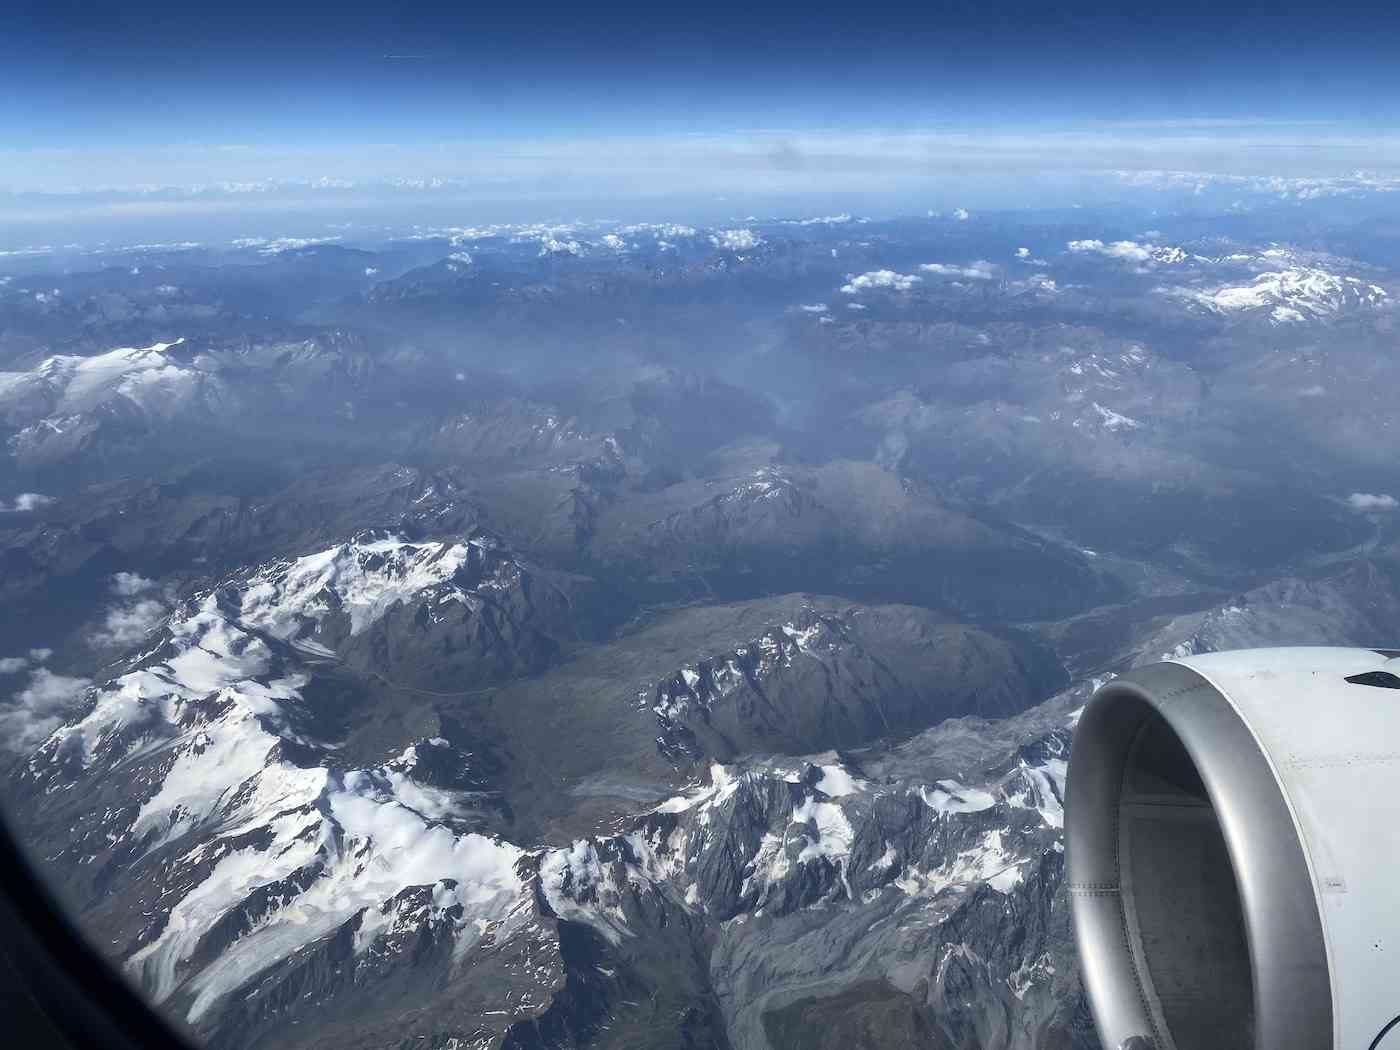 Travel During COVID - flying over Alps